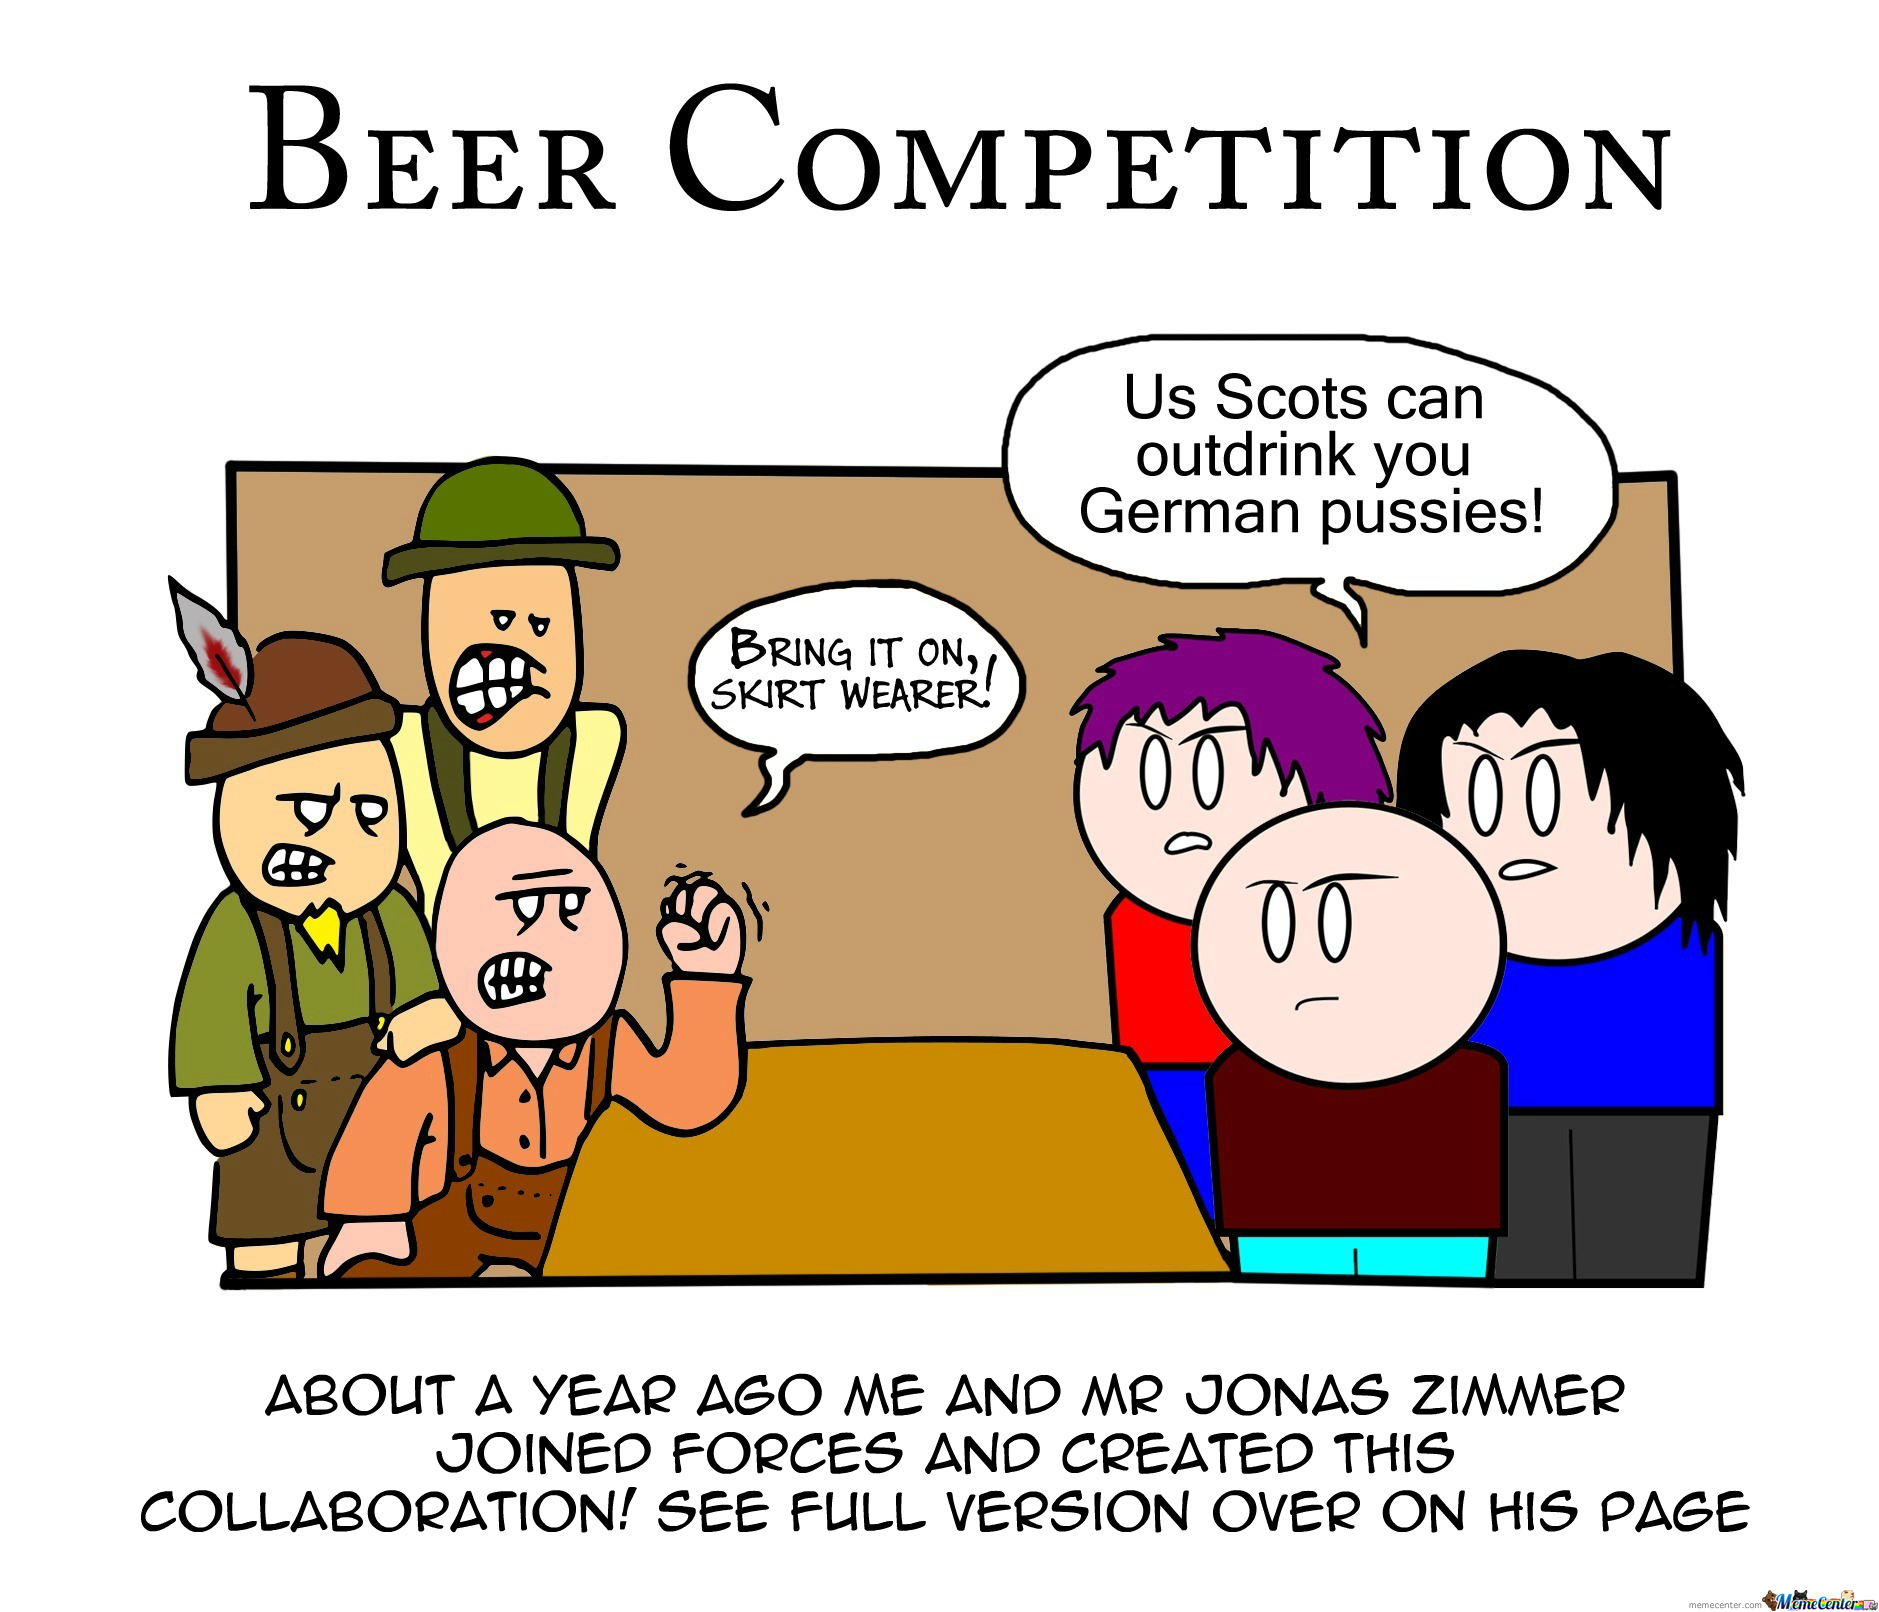 [RMX] Beer Competition (Starring Sparky Doodles Comics)